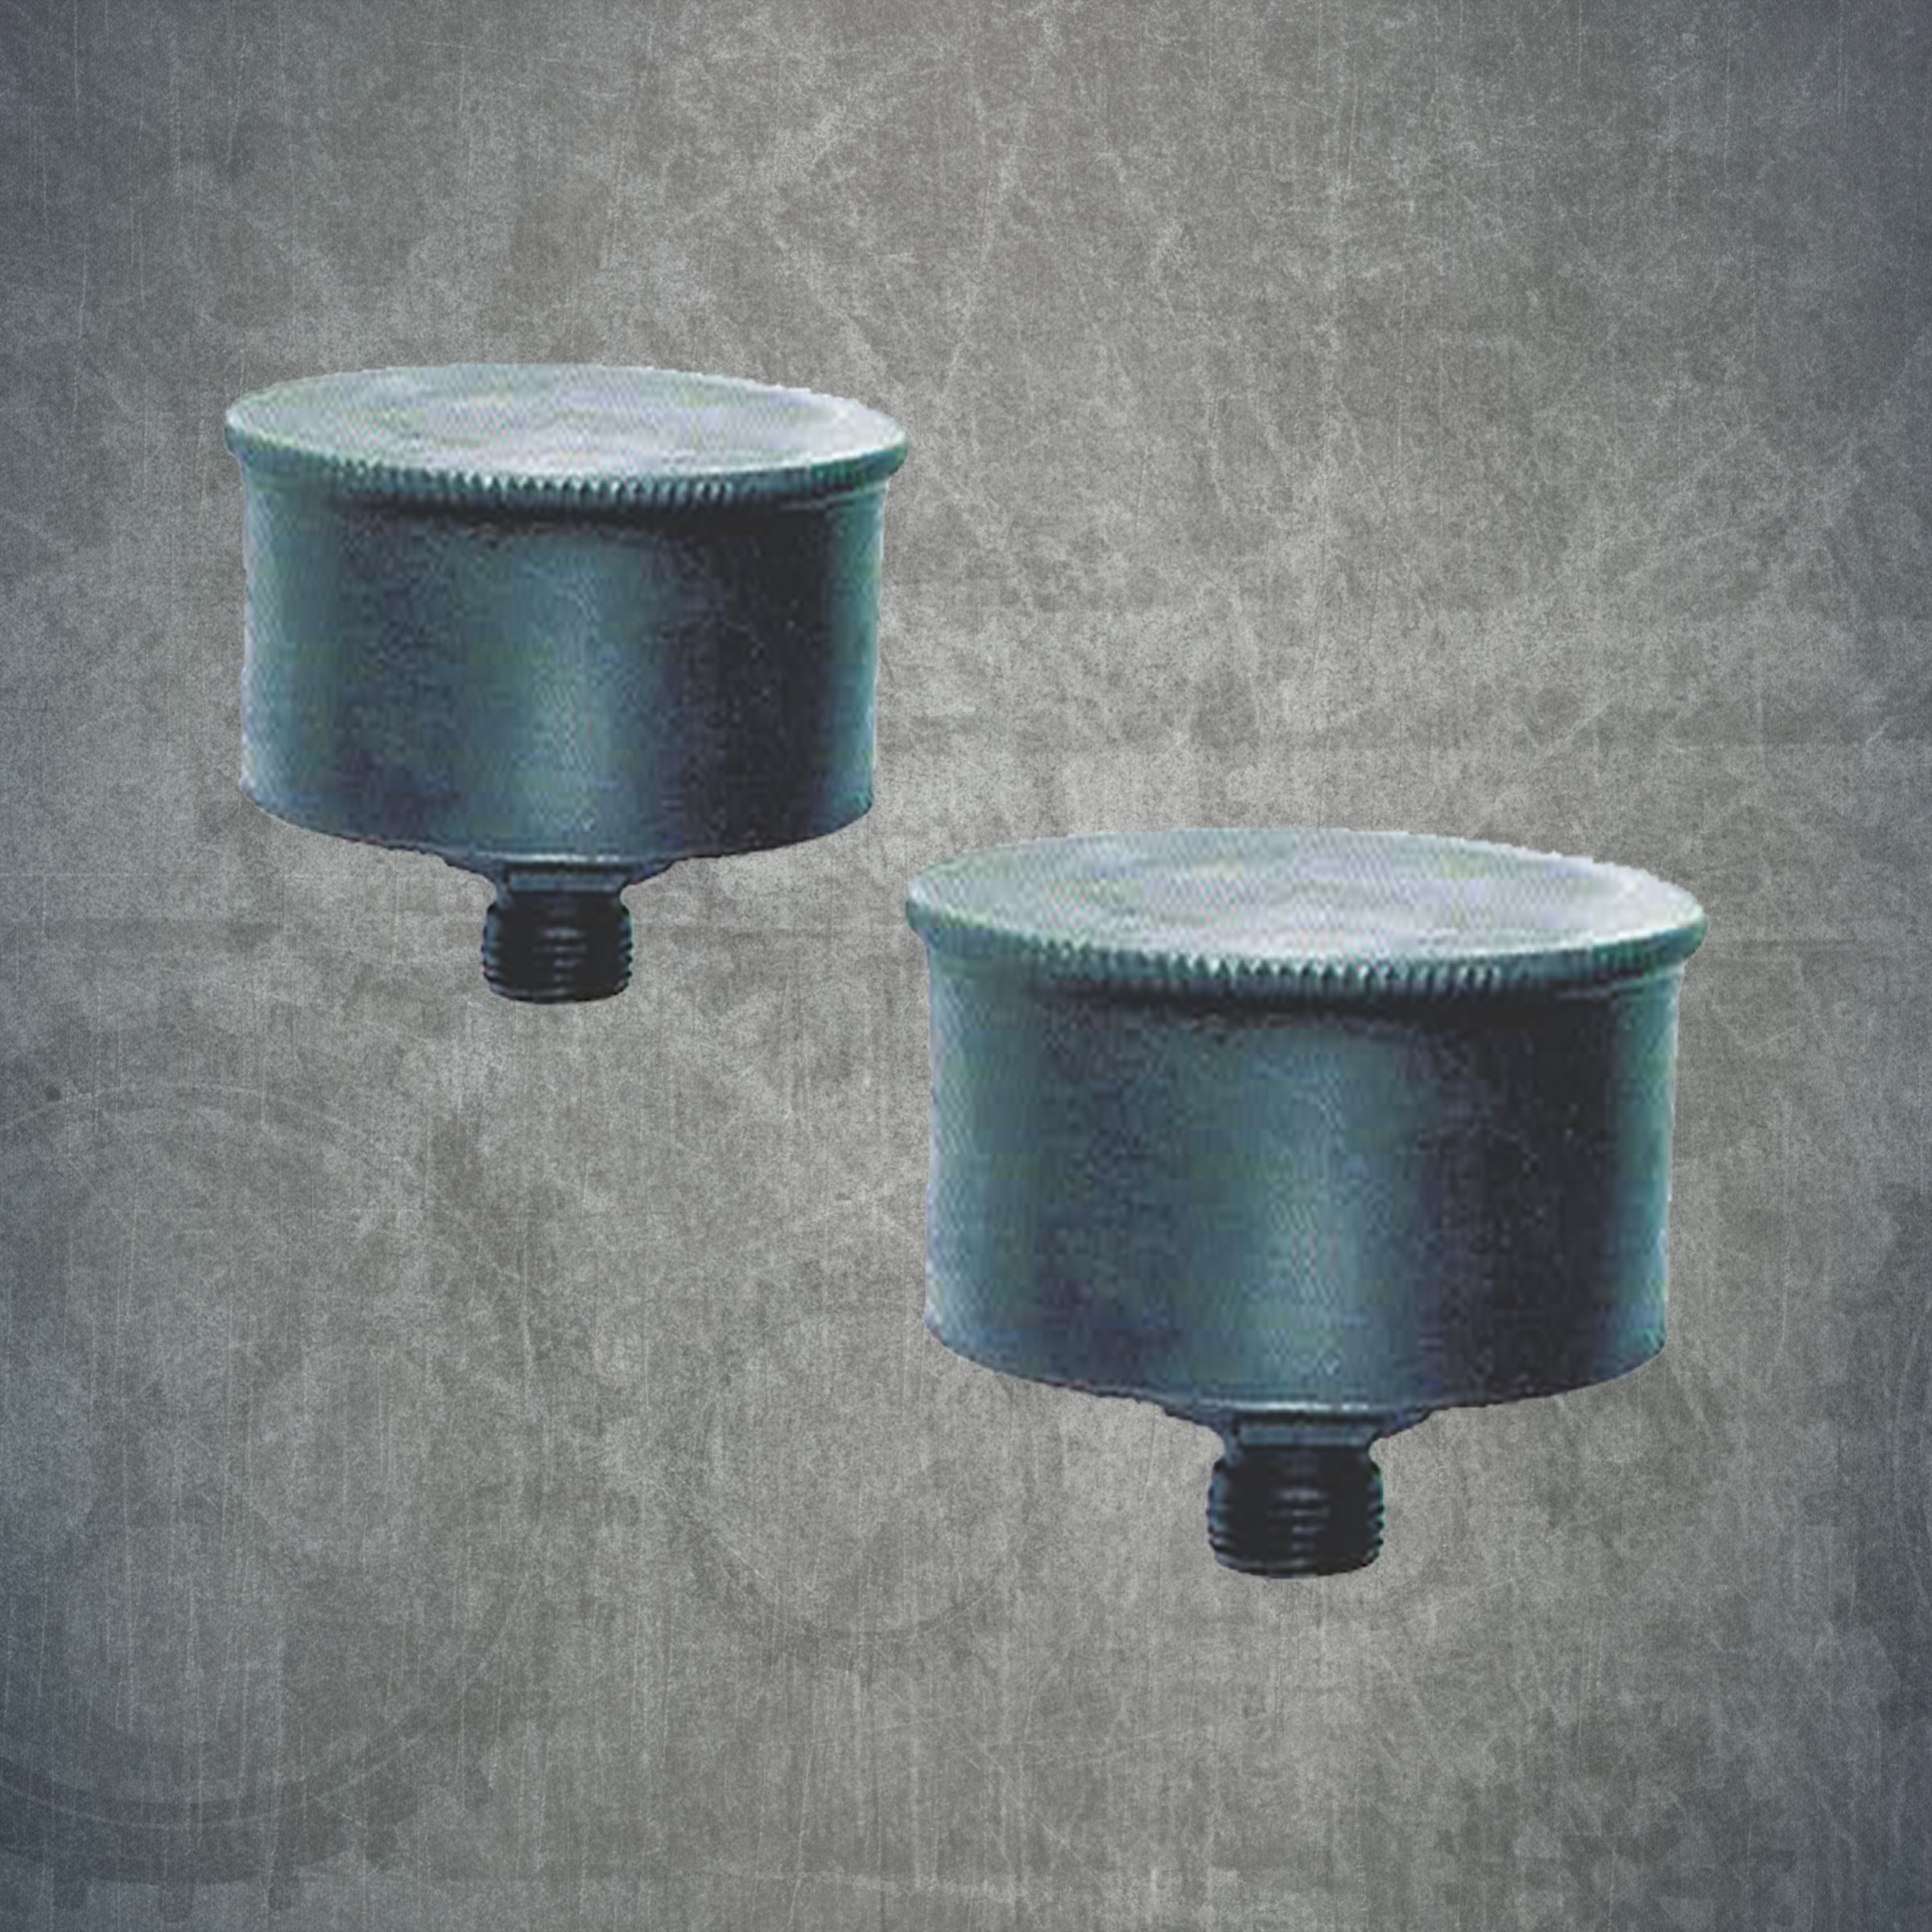 Grease Cup Manufacturer in India